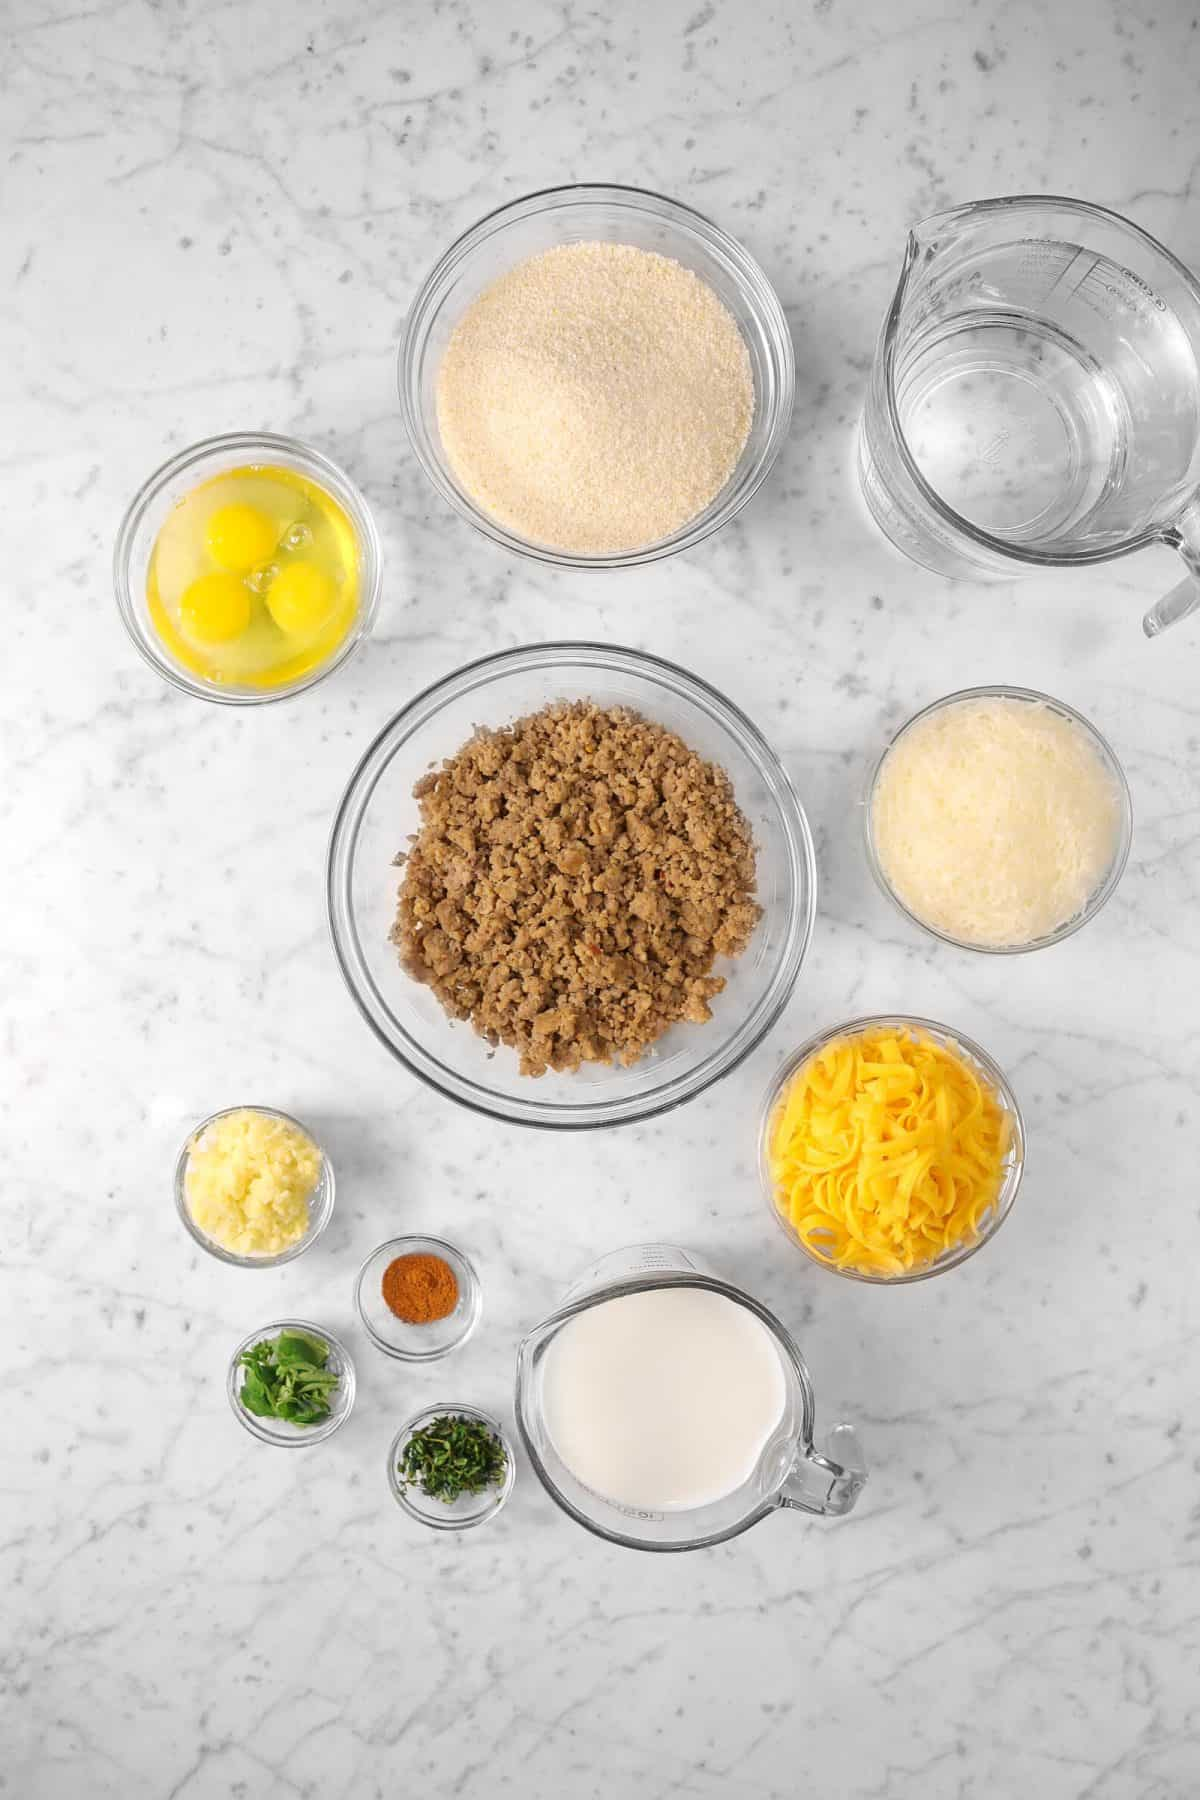 ingredients for sausage and grits casserole